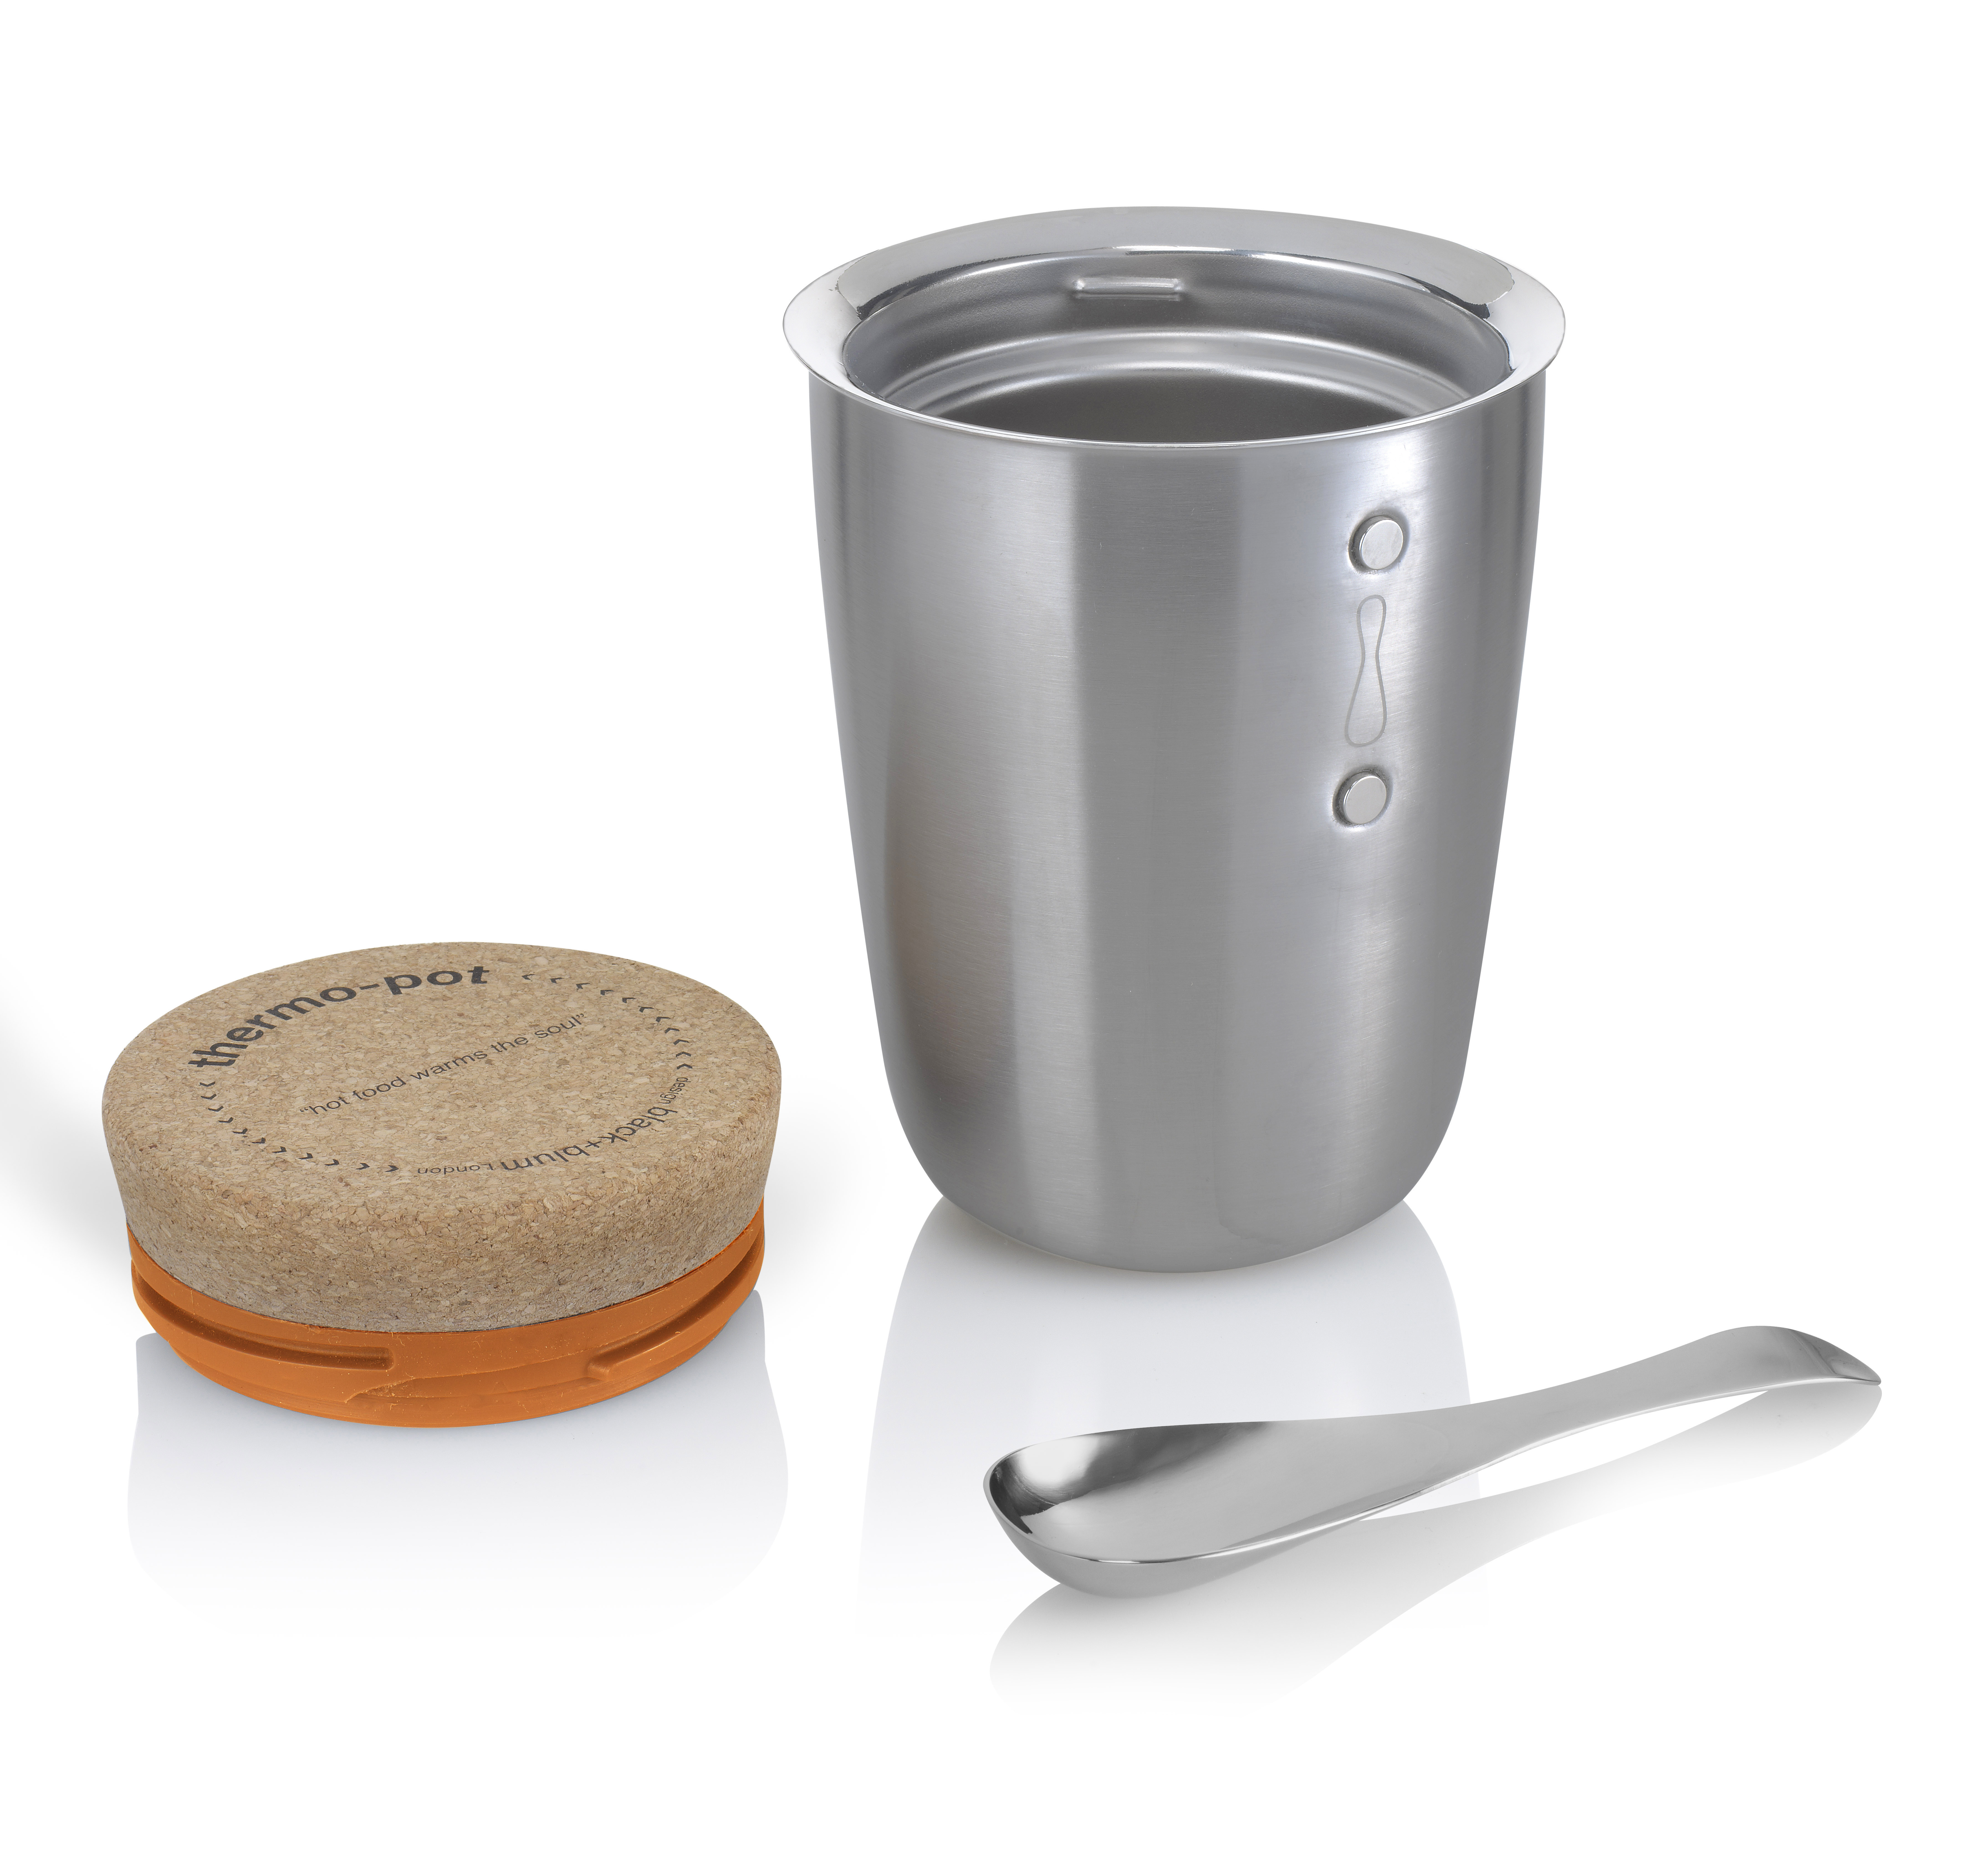 Thermo Pot with spoon by side